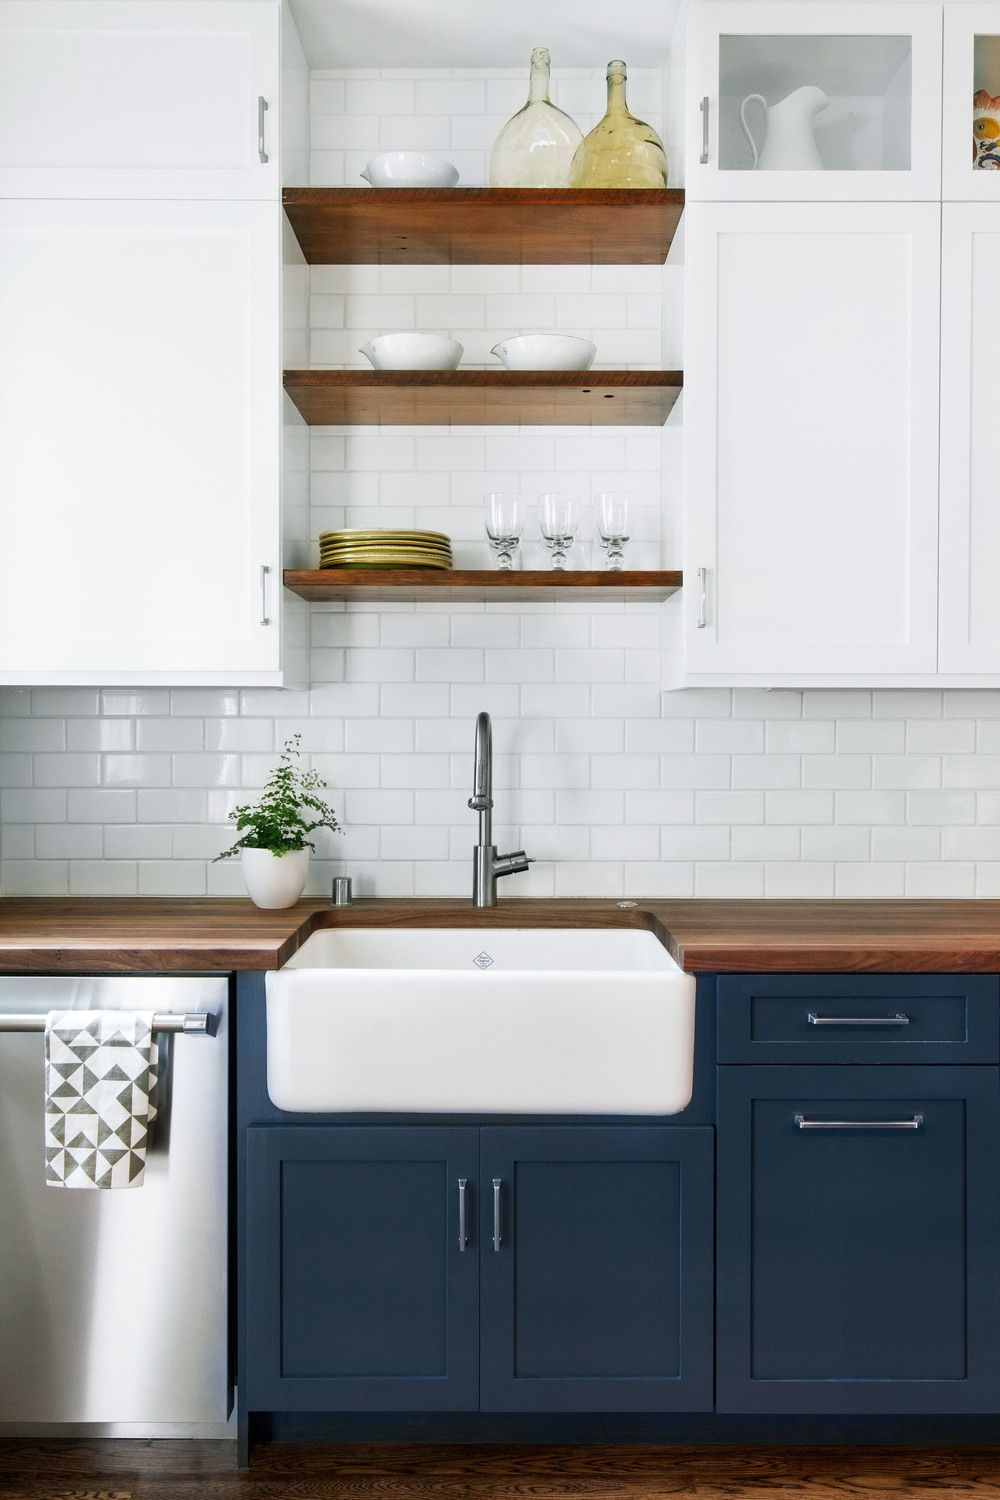 Find This Pin And More On Blue And White Dark Base Cabinets